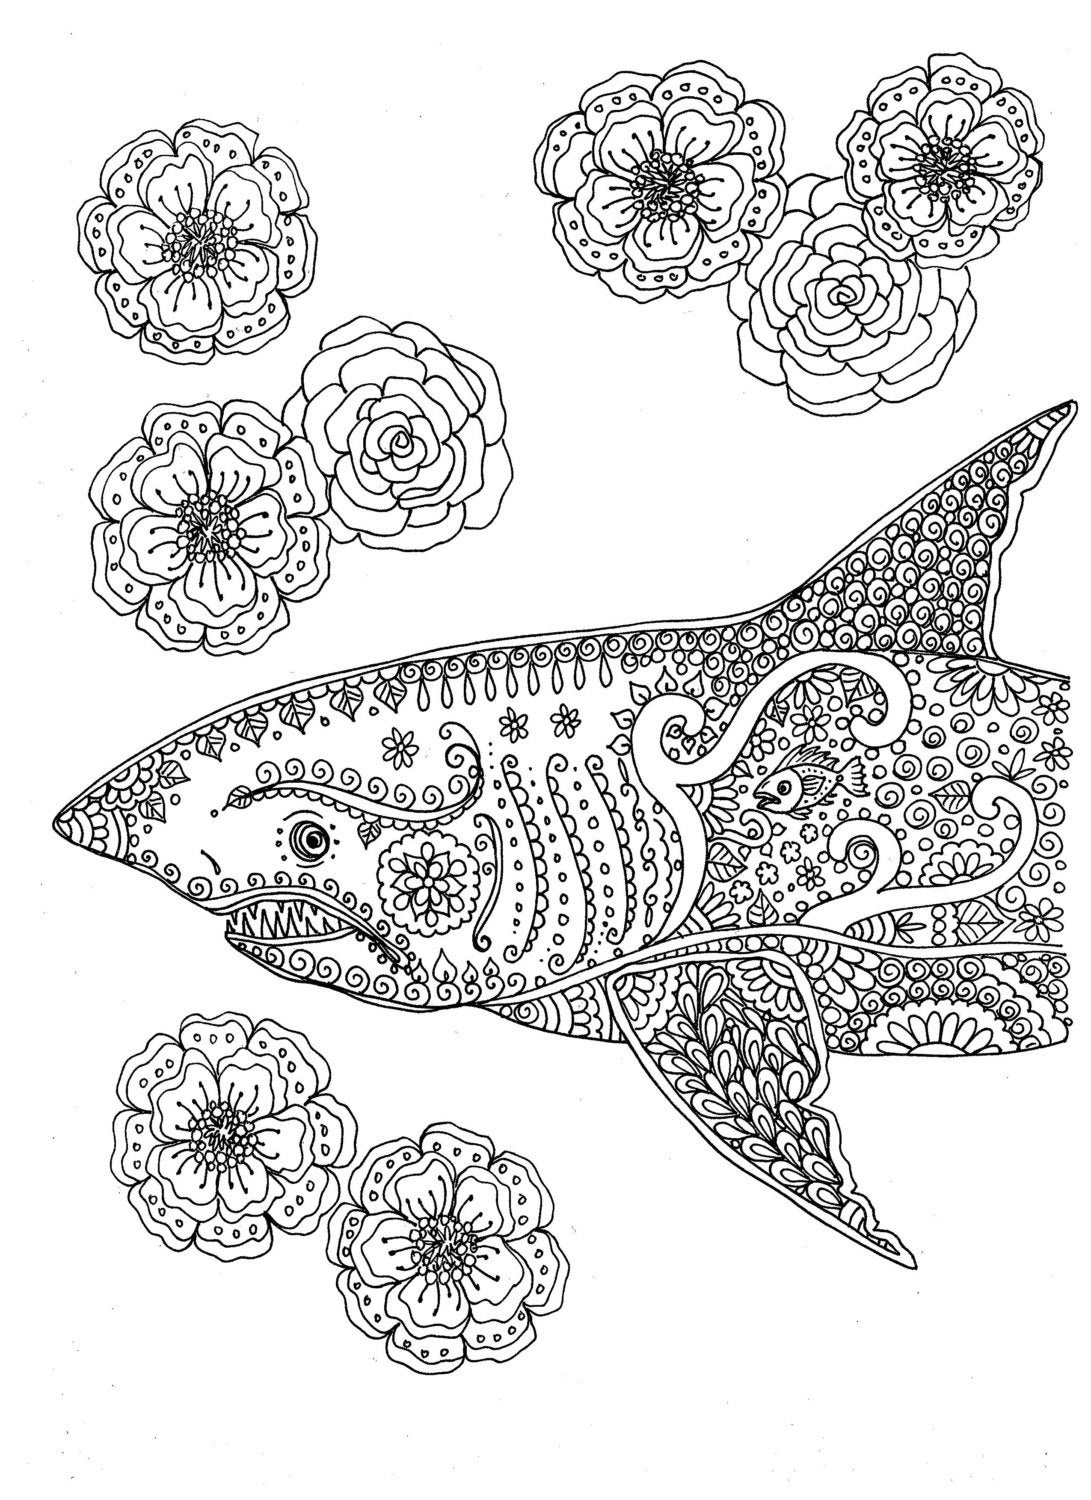 free printable shark coloring pages instant download coloring page shark adult coloring you be the printable free coloring shark pages